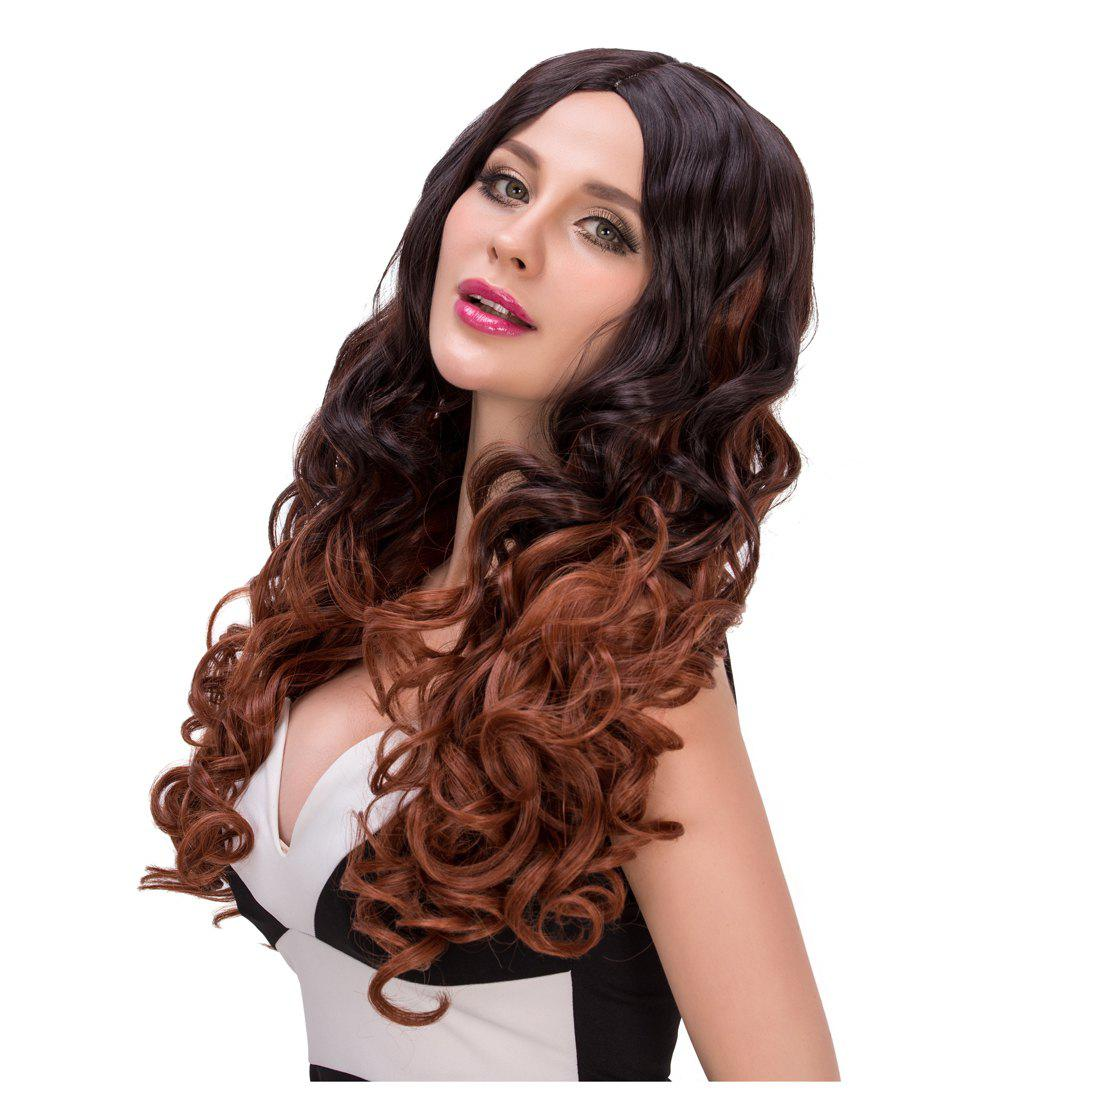 Stylish Women's Long Curly Middle Part Mixed Color Synthetic Hair Wig - COLORMIX